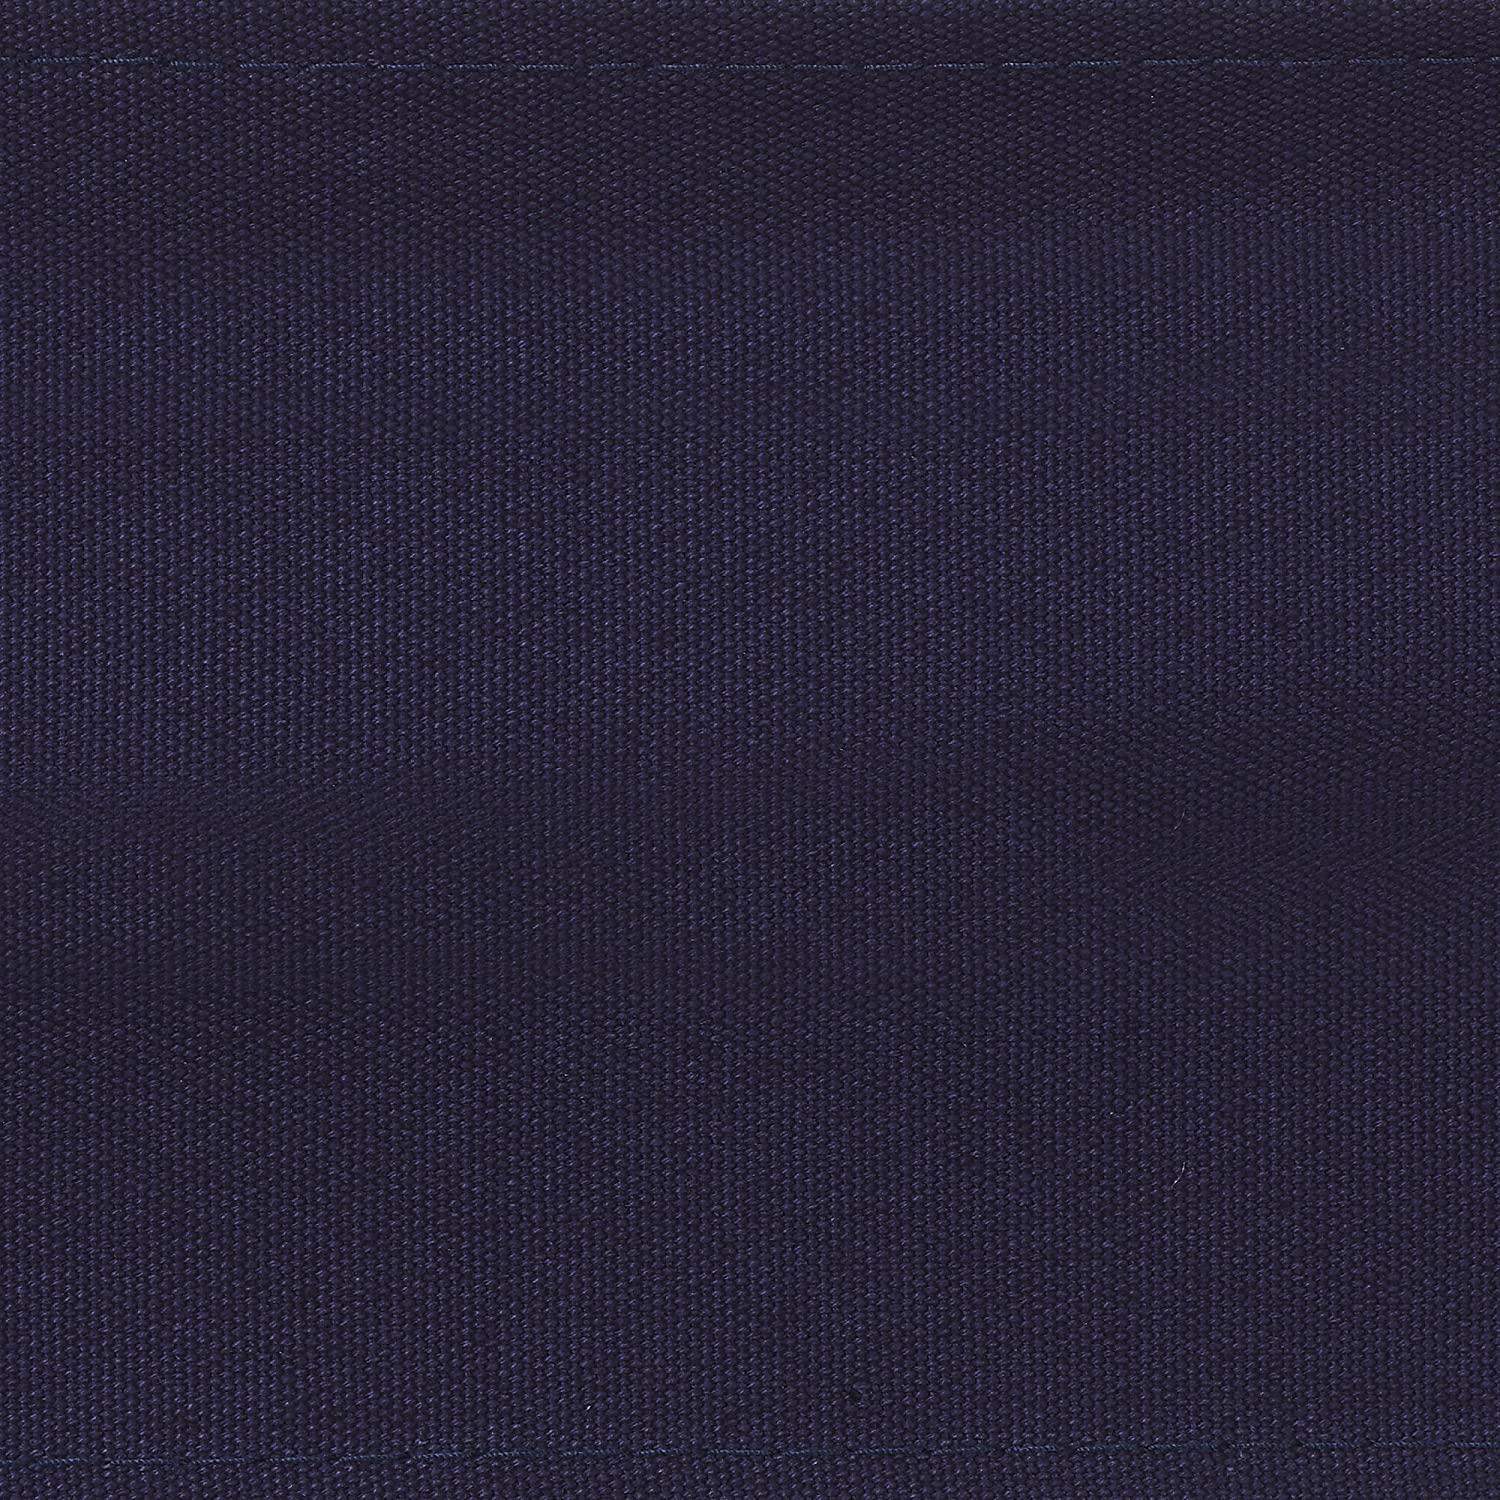 Casual Home Director Chair Replacement Canvas Navy Blue